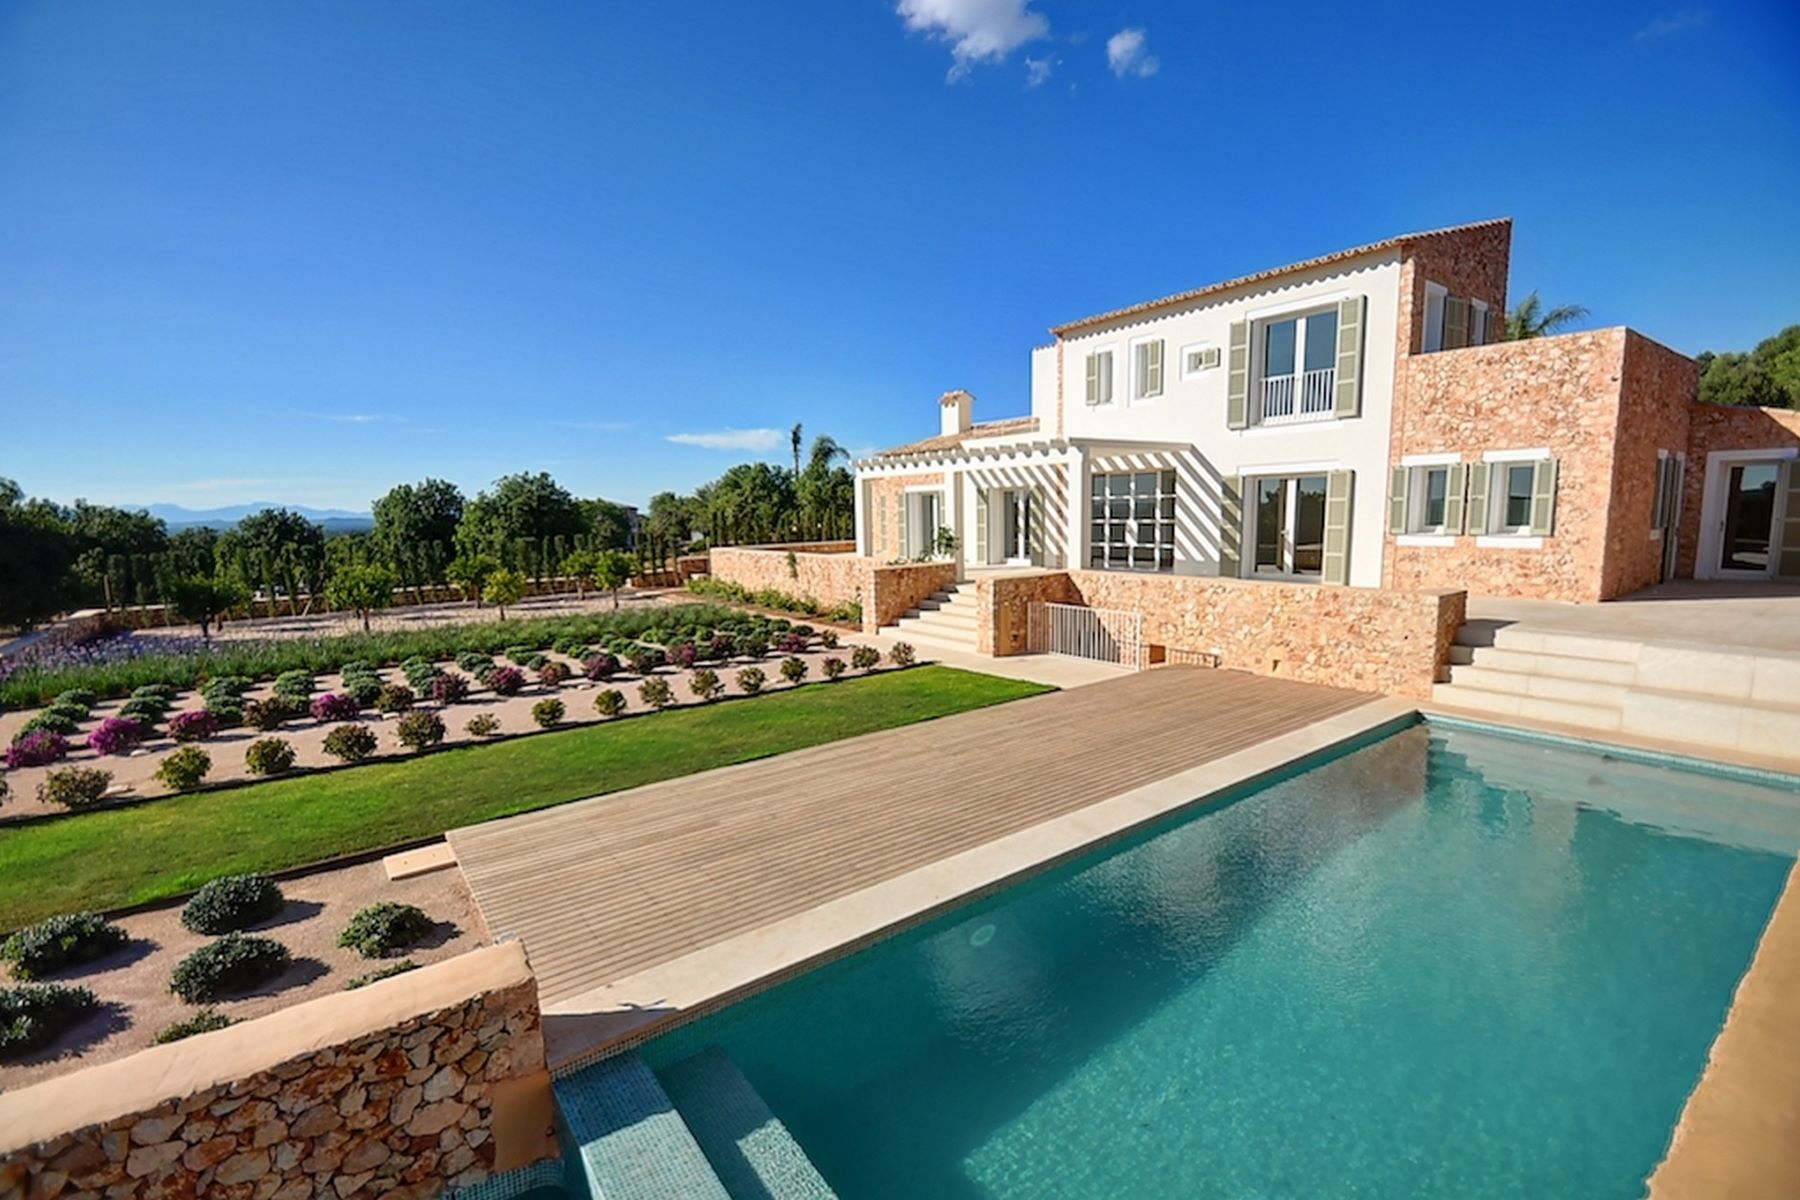 Single Family Homes for Sale at Wonderful finca in Cas Concos Felanitx, Balearic Islands Spain